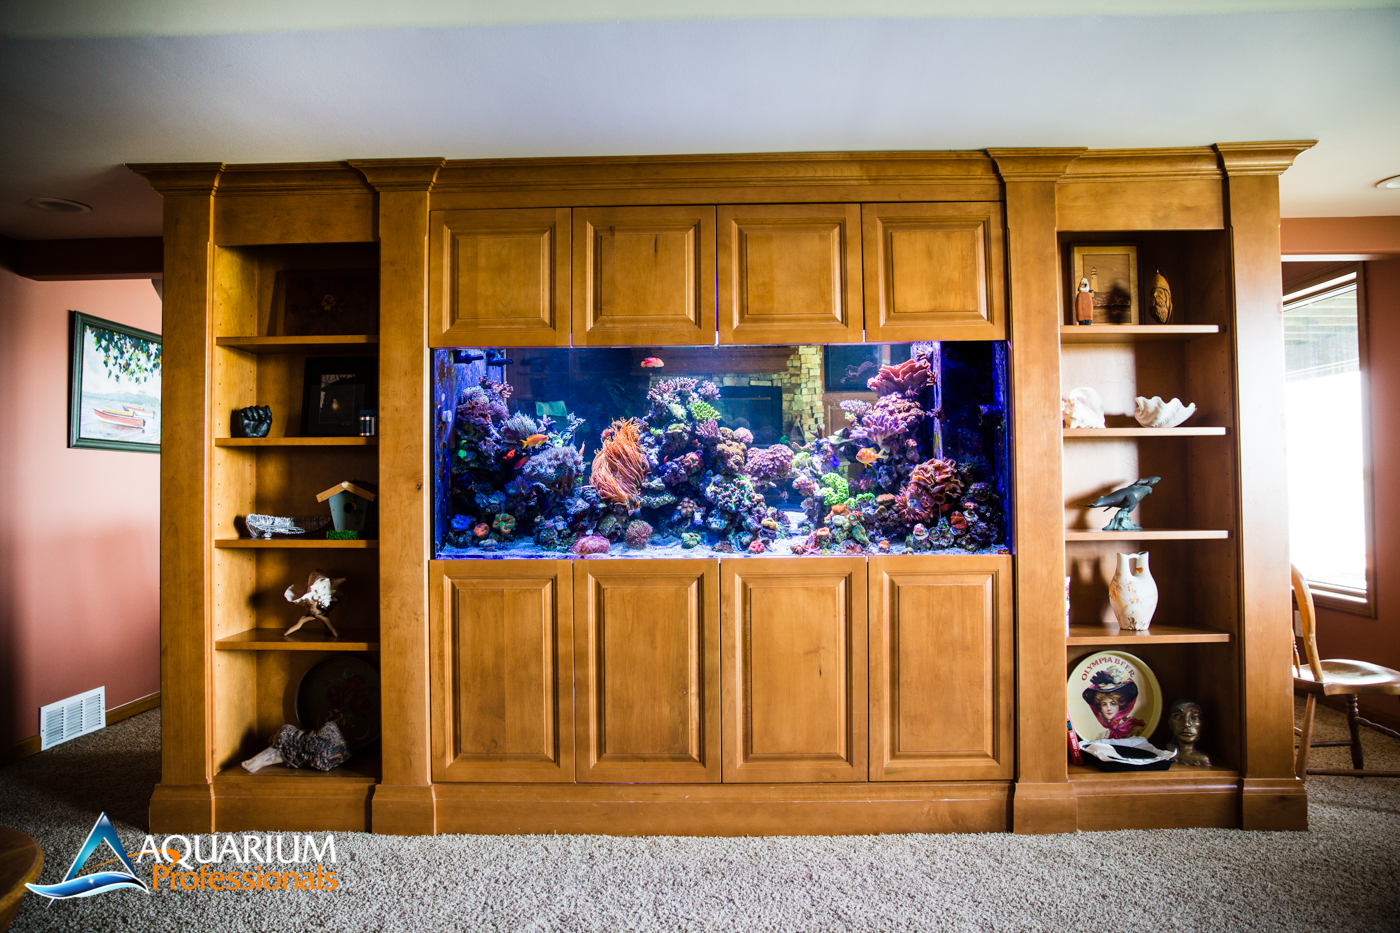 350 Gallon Double-Sided Room Divider